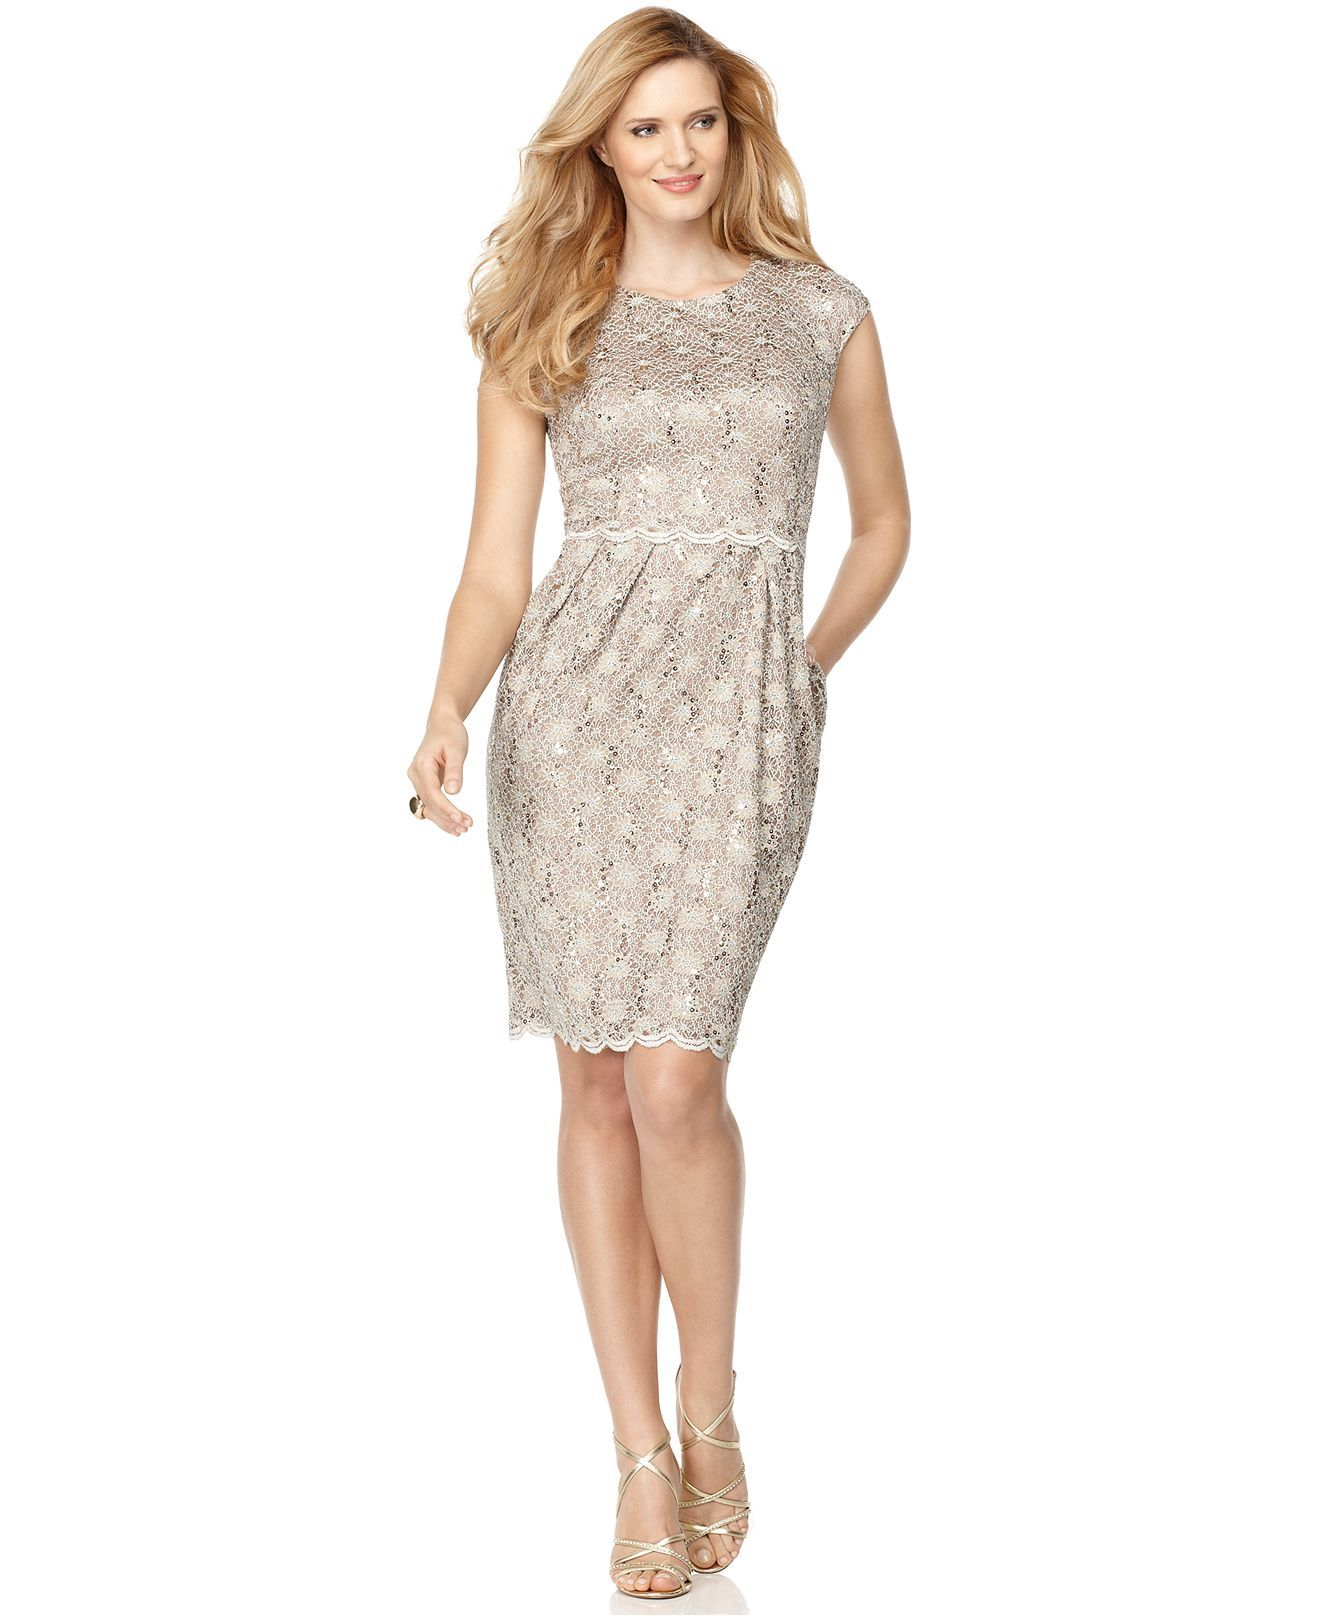 7bf3c5aa2529 Alex Evenings Dress, Sleeveless Sequin Lace Sheath - Womens Dresses - Macy's